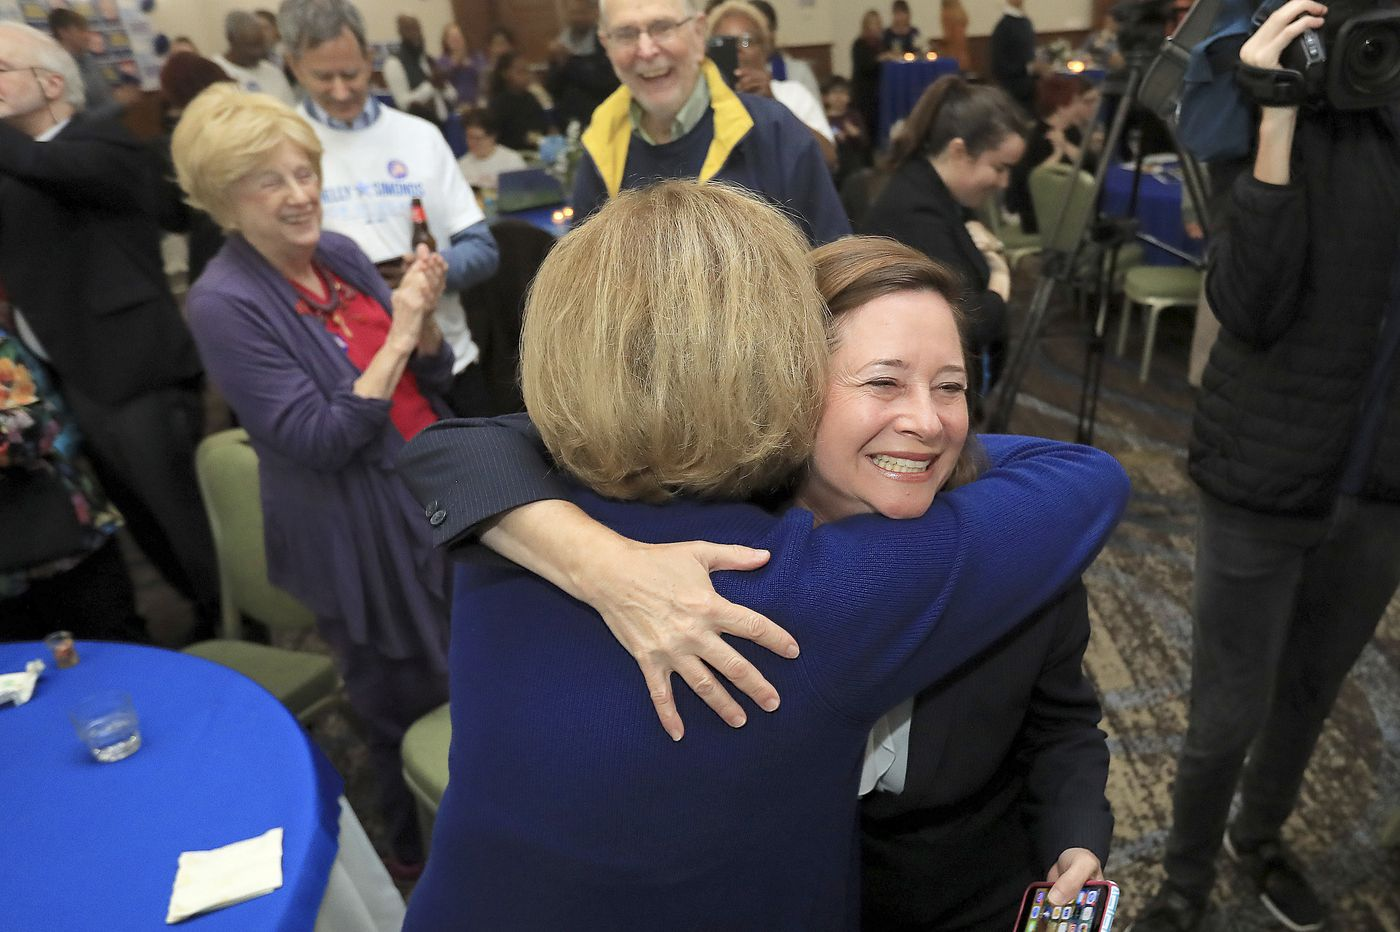 Democrats take control of Virginia General Assembly in historic election